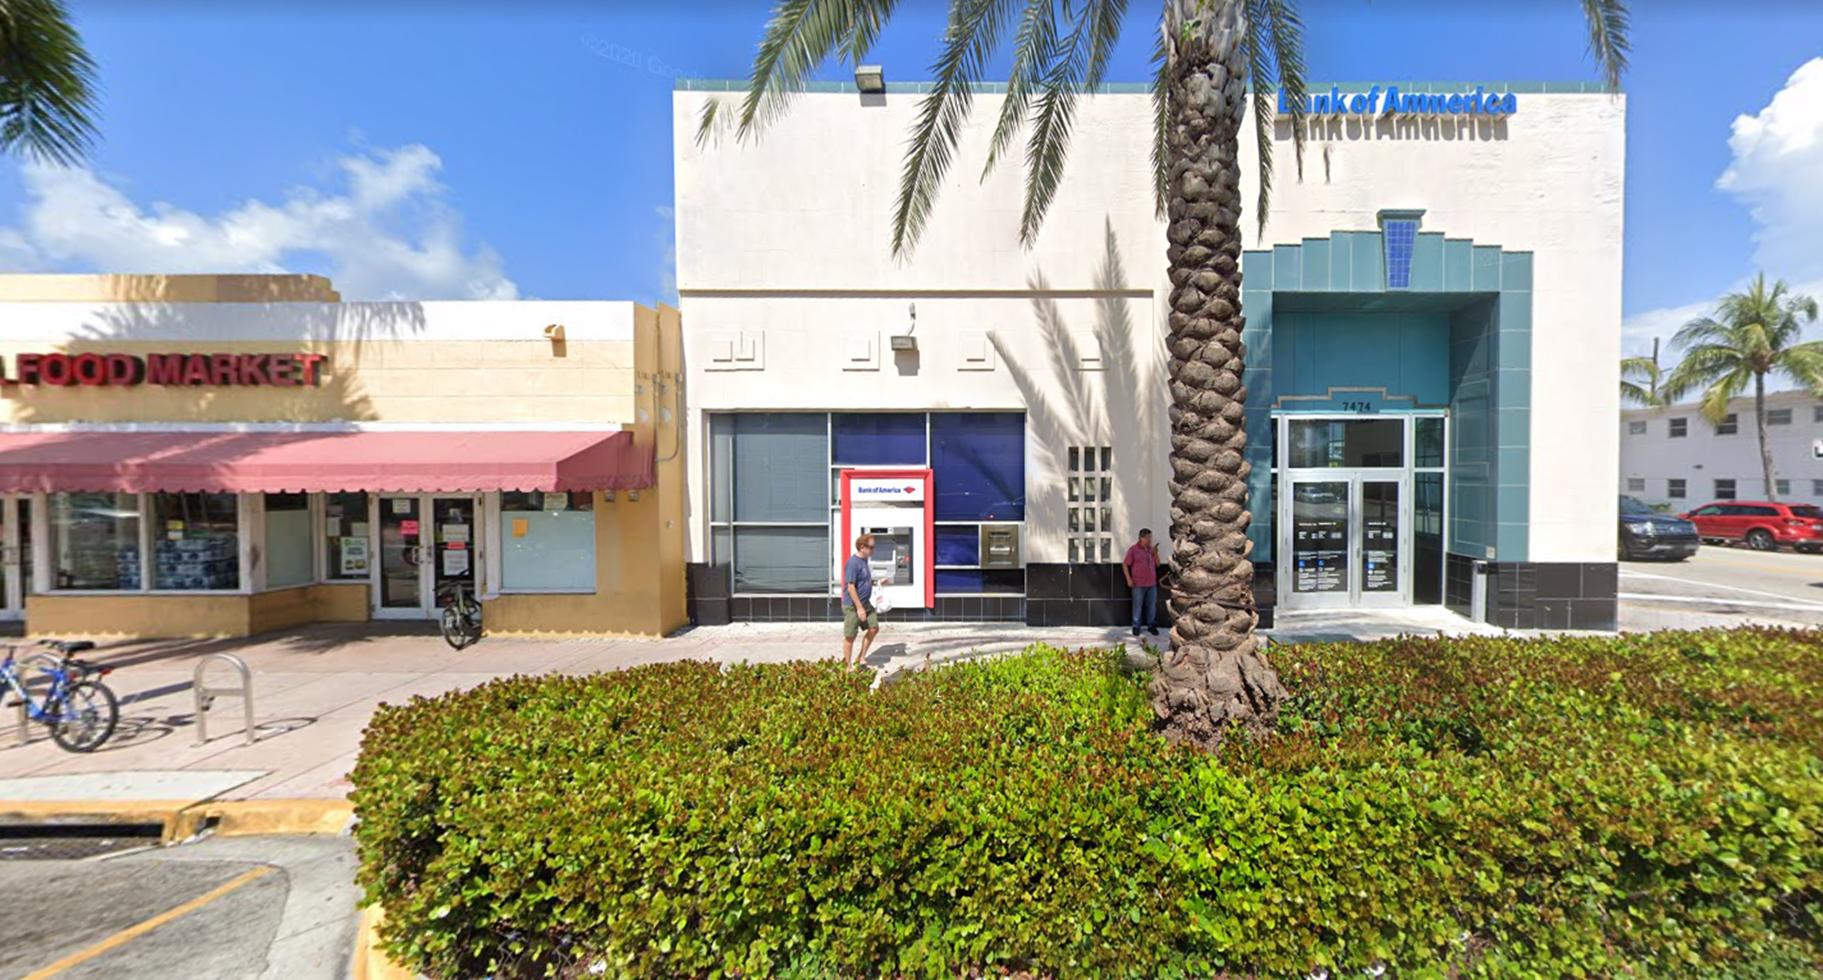 Bank of America financial center with walk-up ATM   7474 Collins Ave, Miami Beach, FL 33141